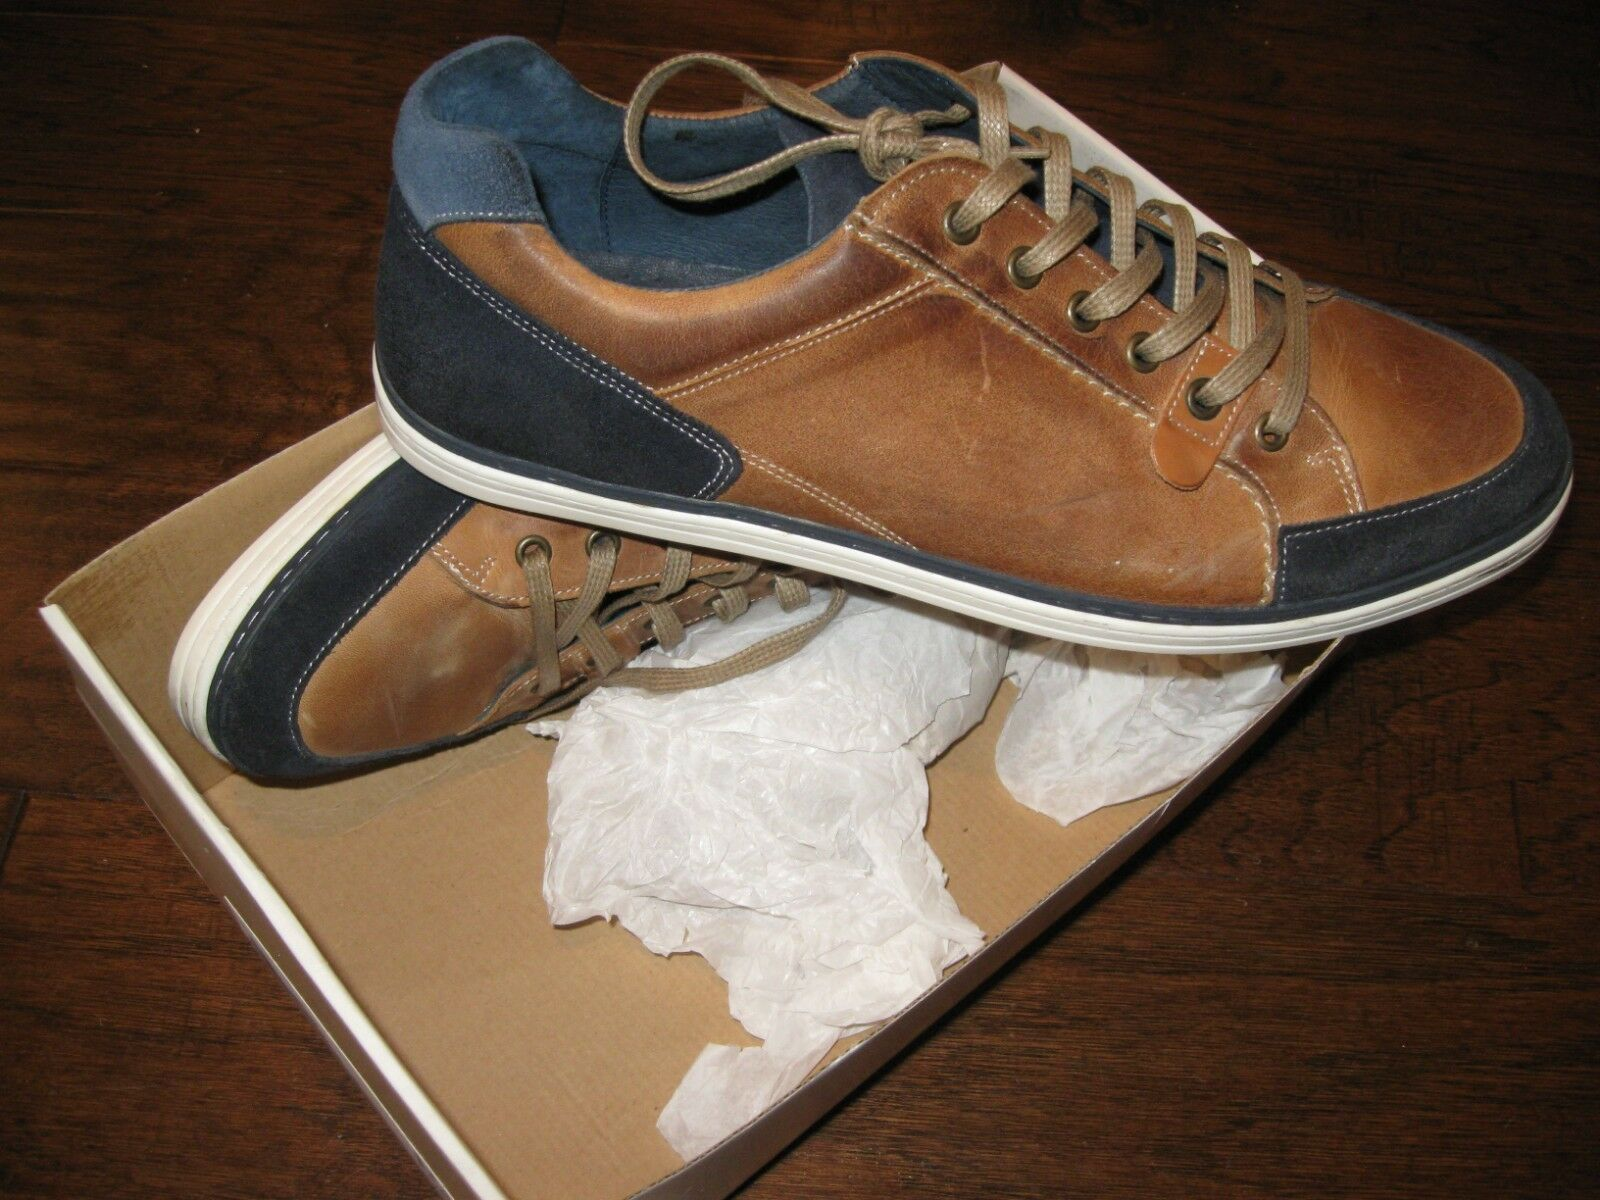 fab19a3c666d ... Converse Jack Purcell Signature Ox Mens Casual Shoe Blue White 151455C  151455C 151455C All Szs ...